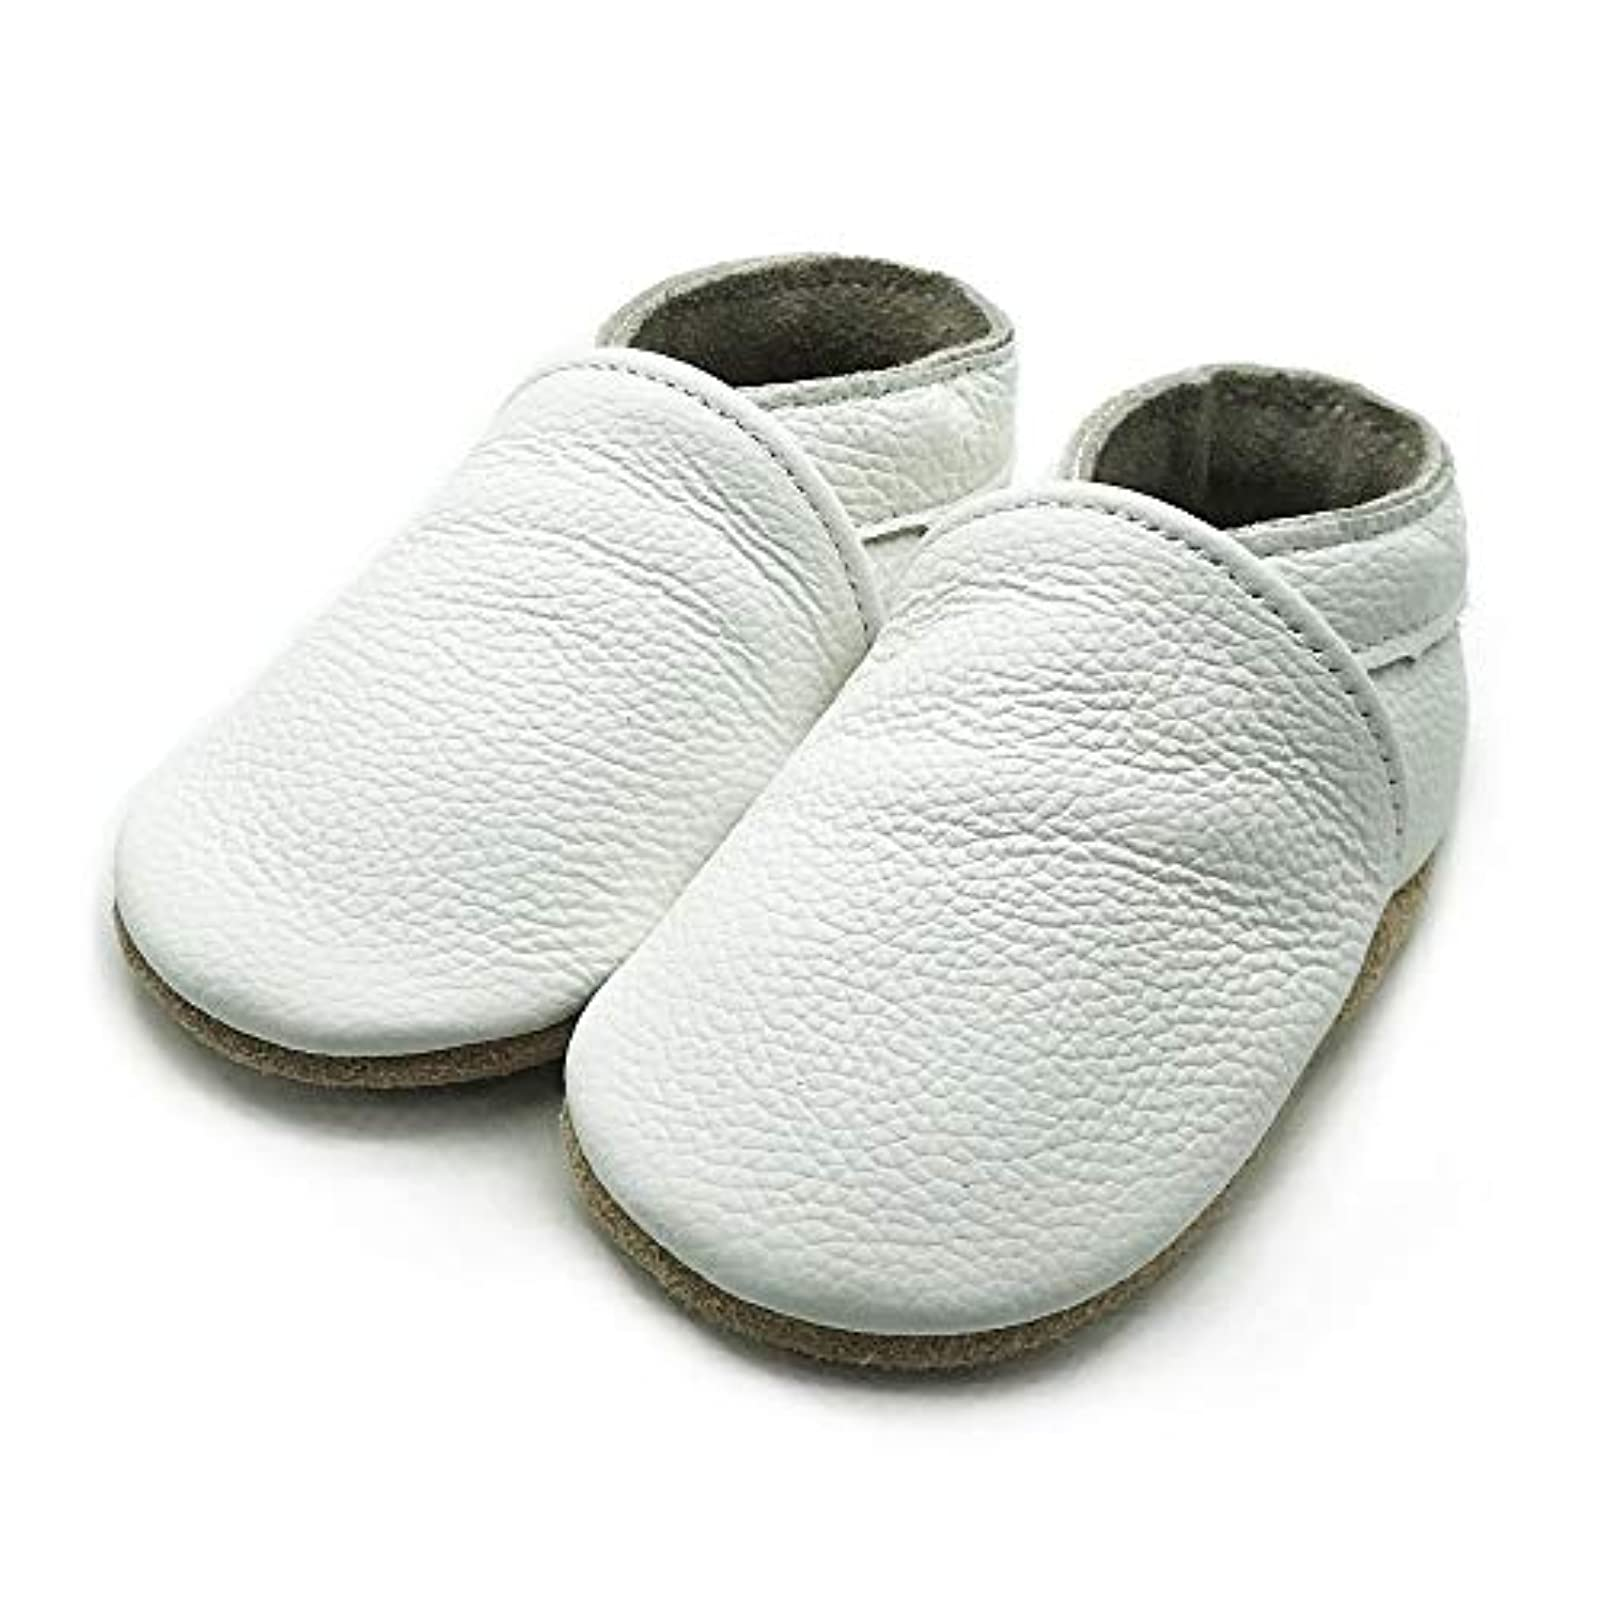 Owlowla Baby Moccasins Leather Soft Sole Newborn Crib Shoes for Boys and Girls